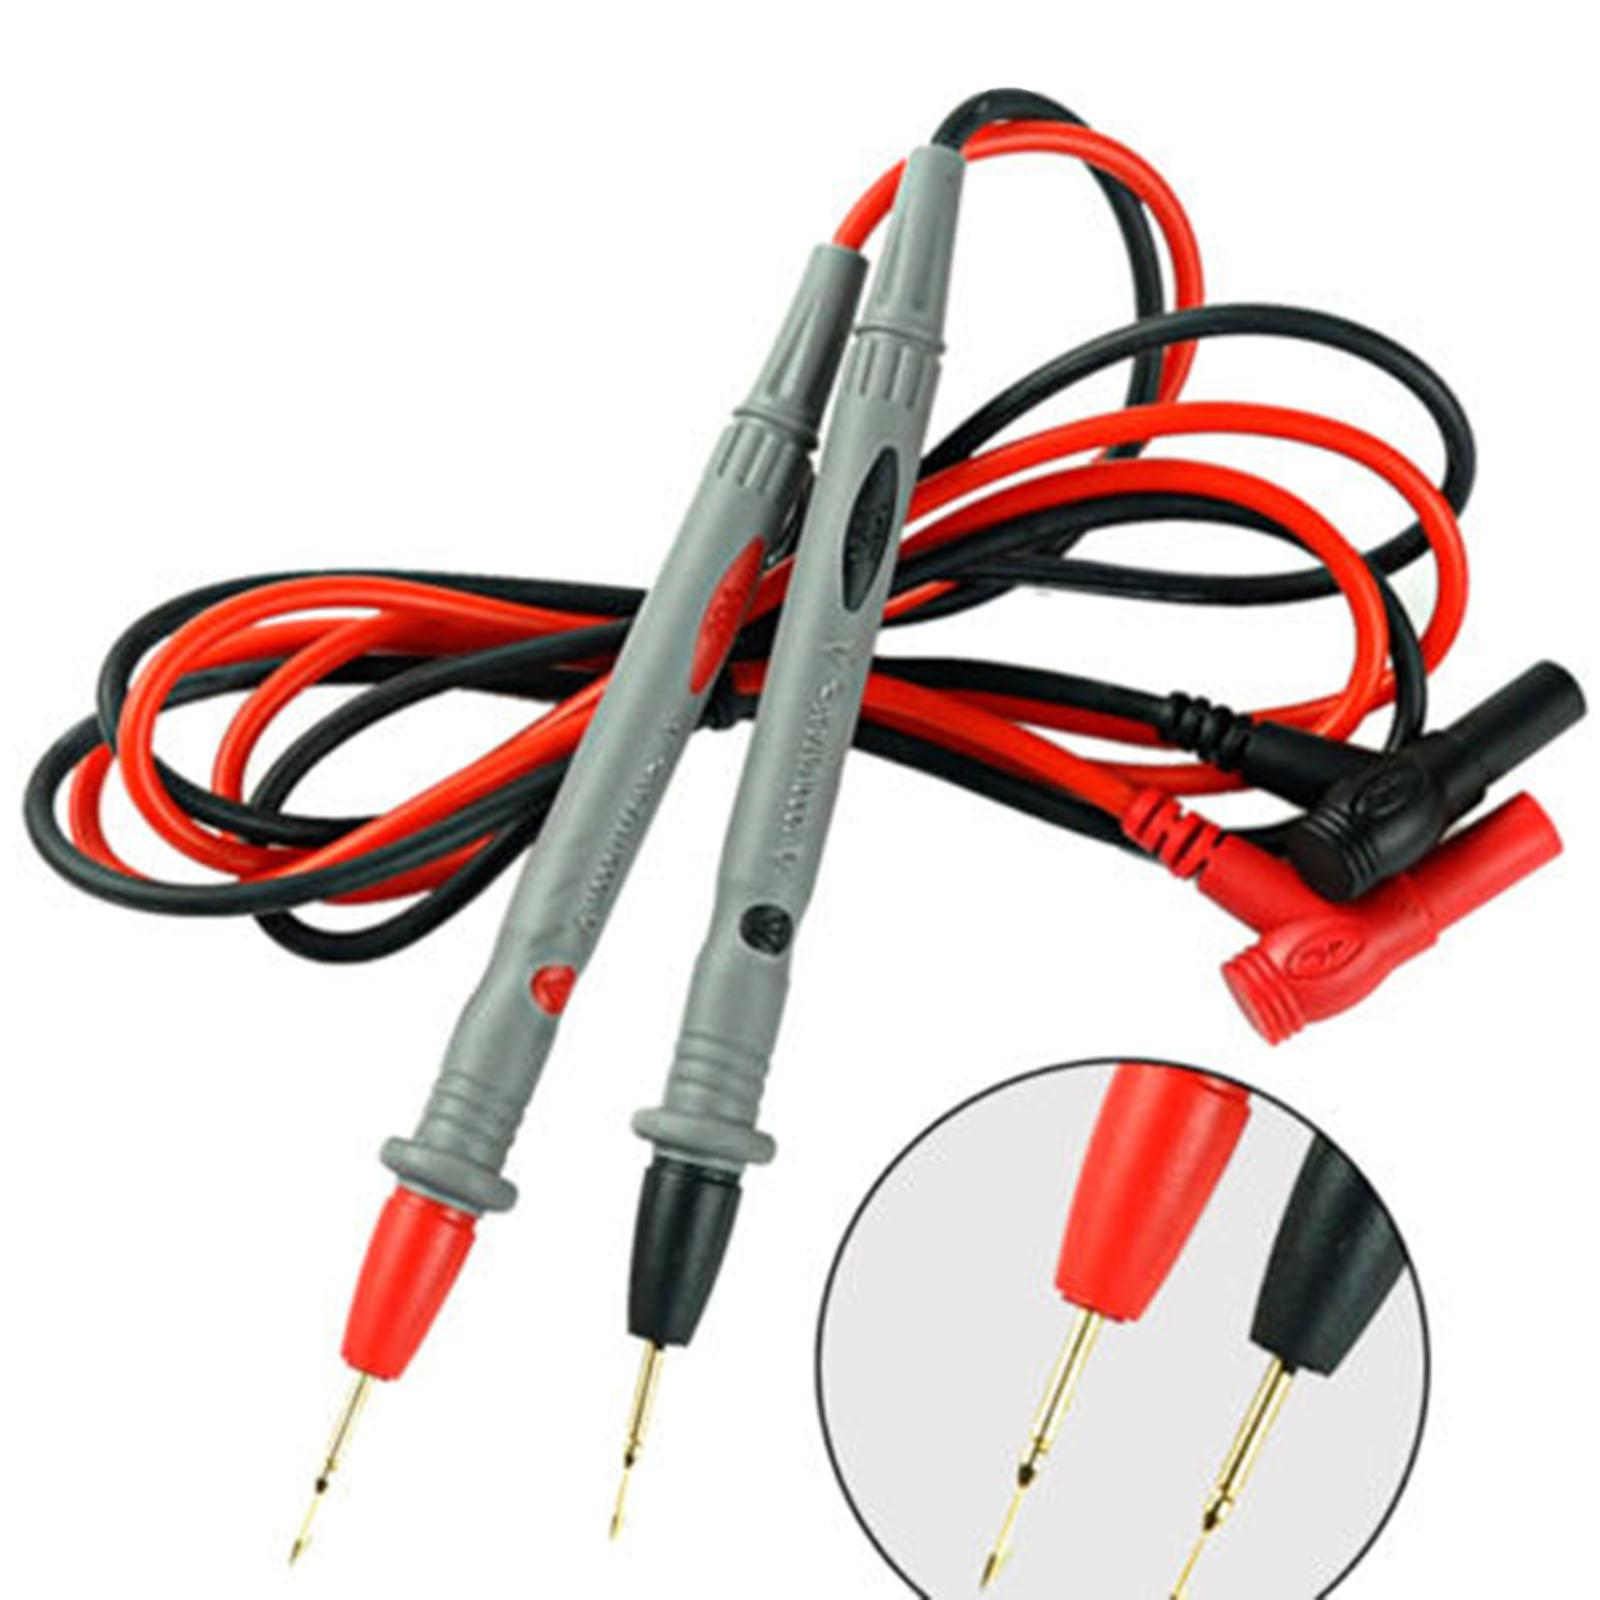 New Arrival Multi Meter Test Pen Cable Universal Digital Multimeter Lead Probe Wire 110cm